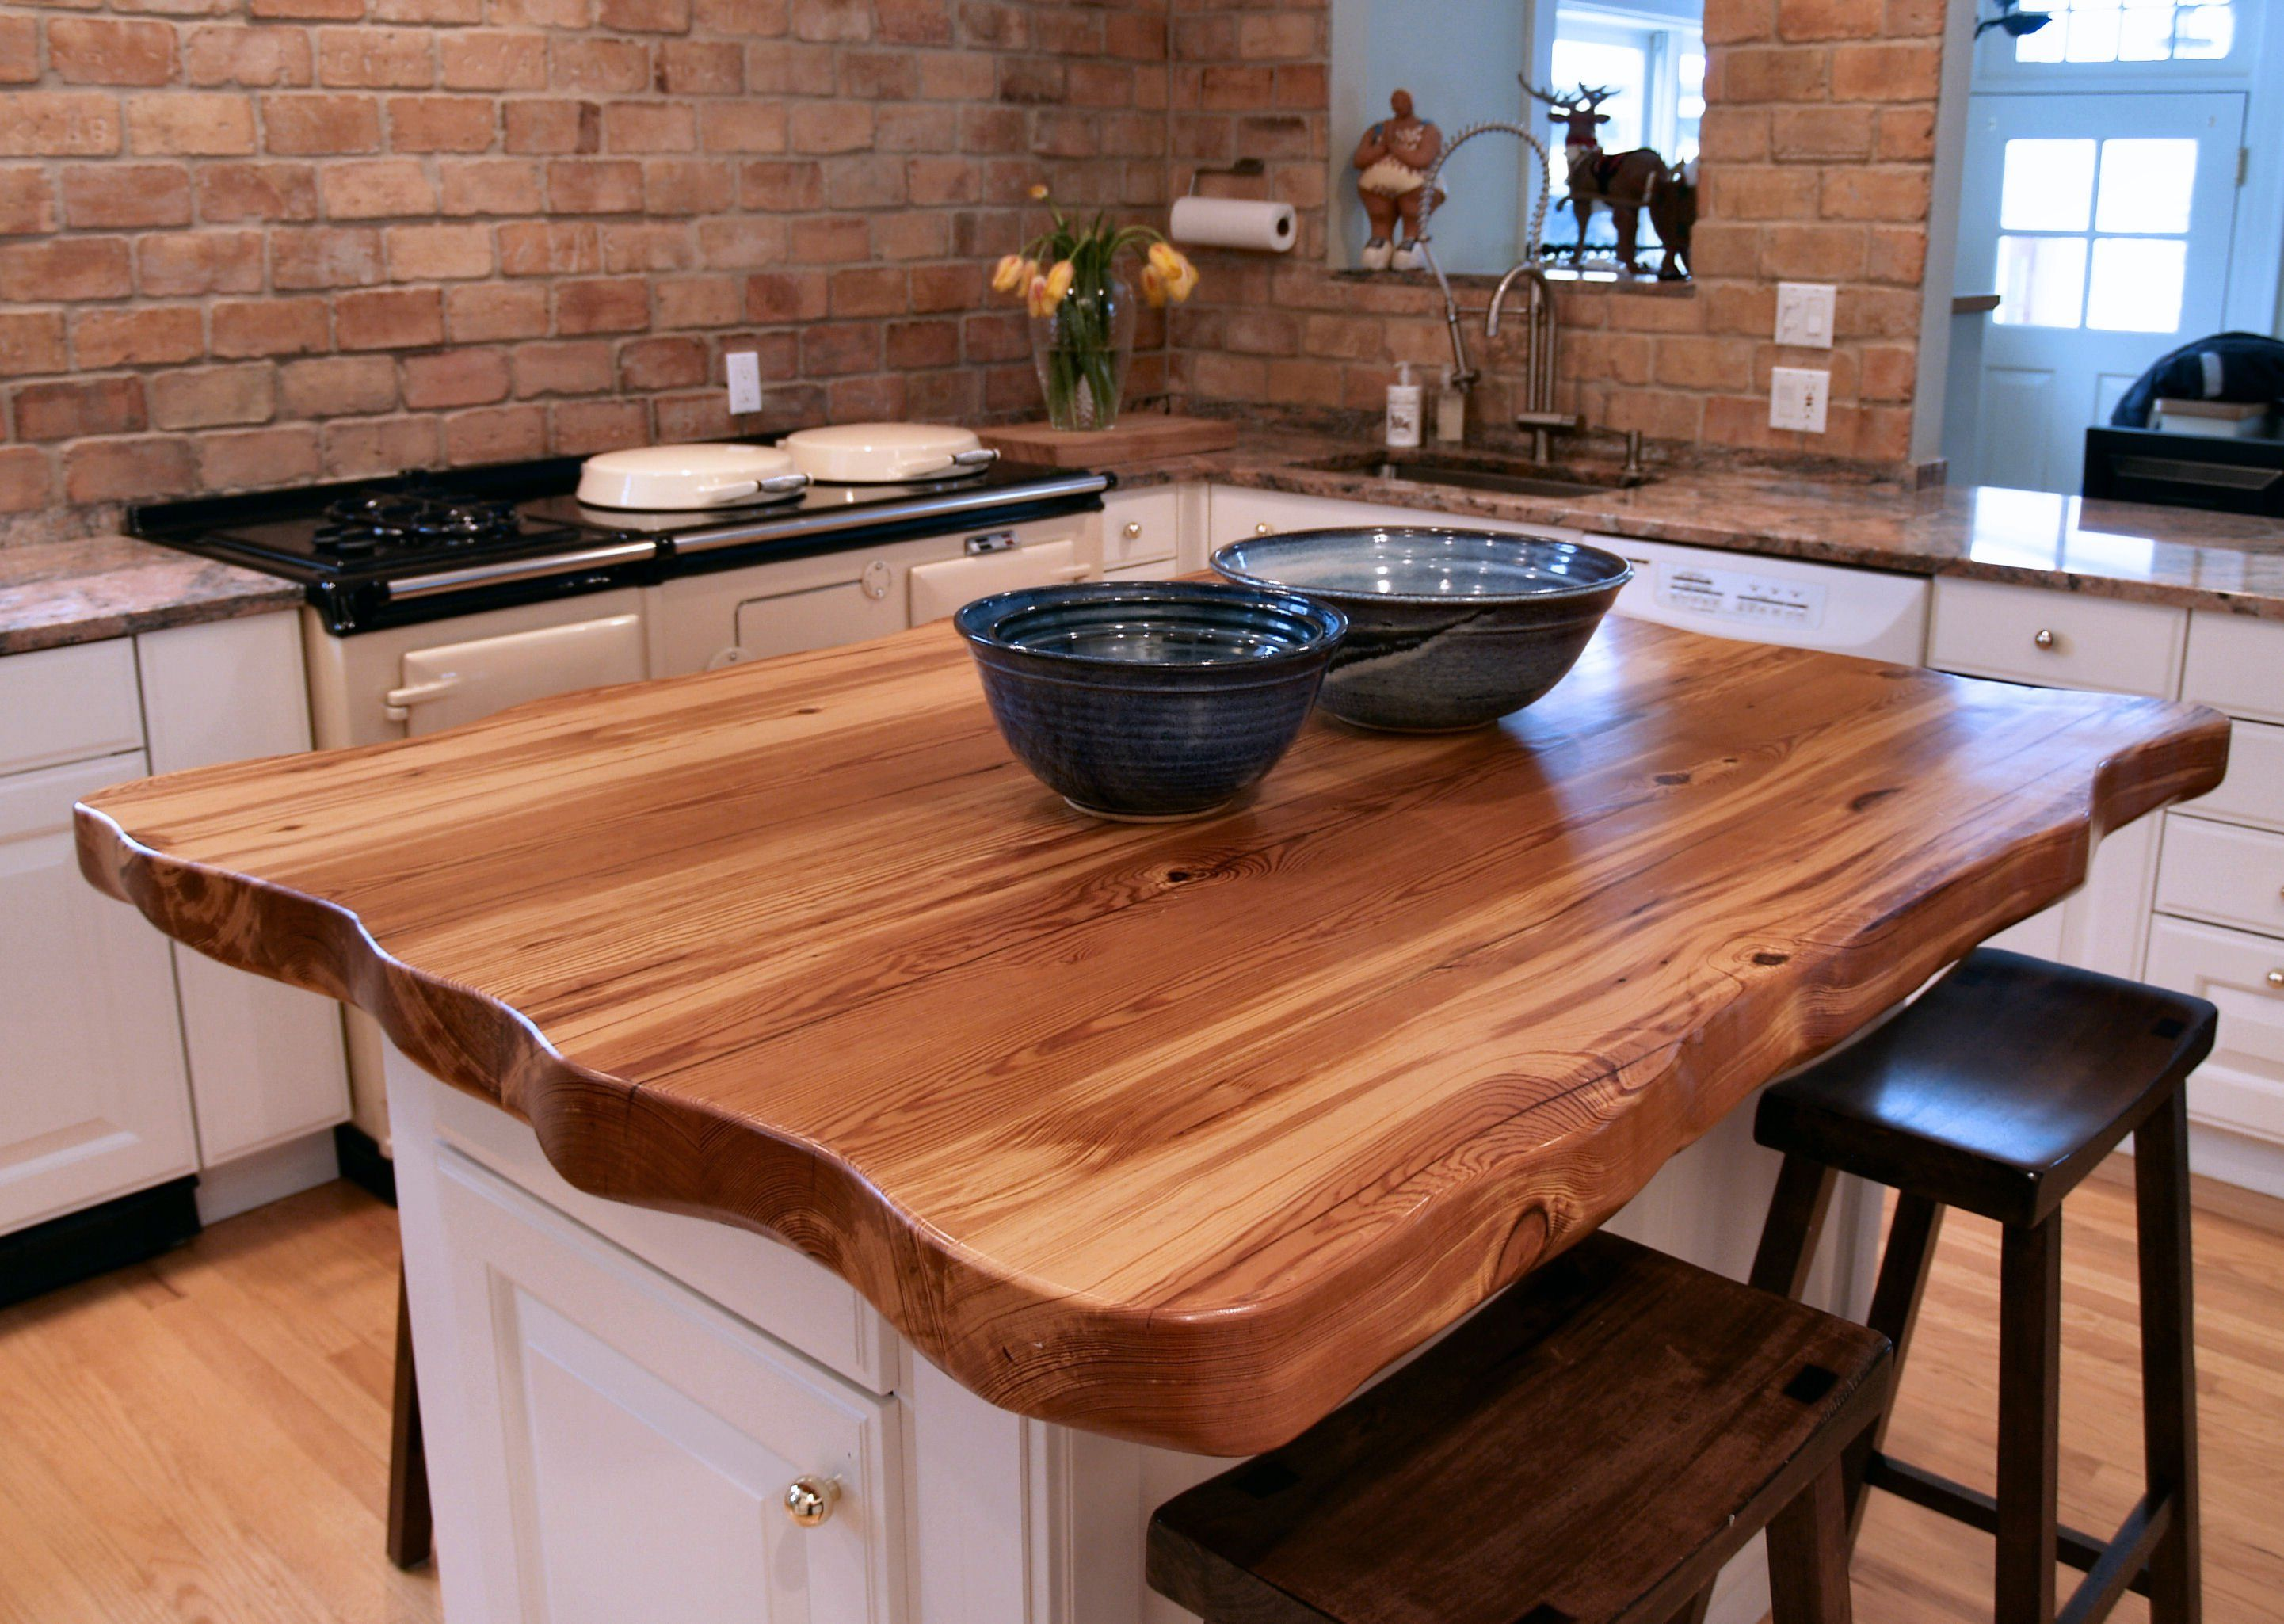 Reclaimed Longleaf Pine Wood Countertop Photo Gallery By